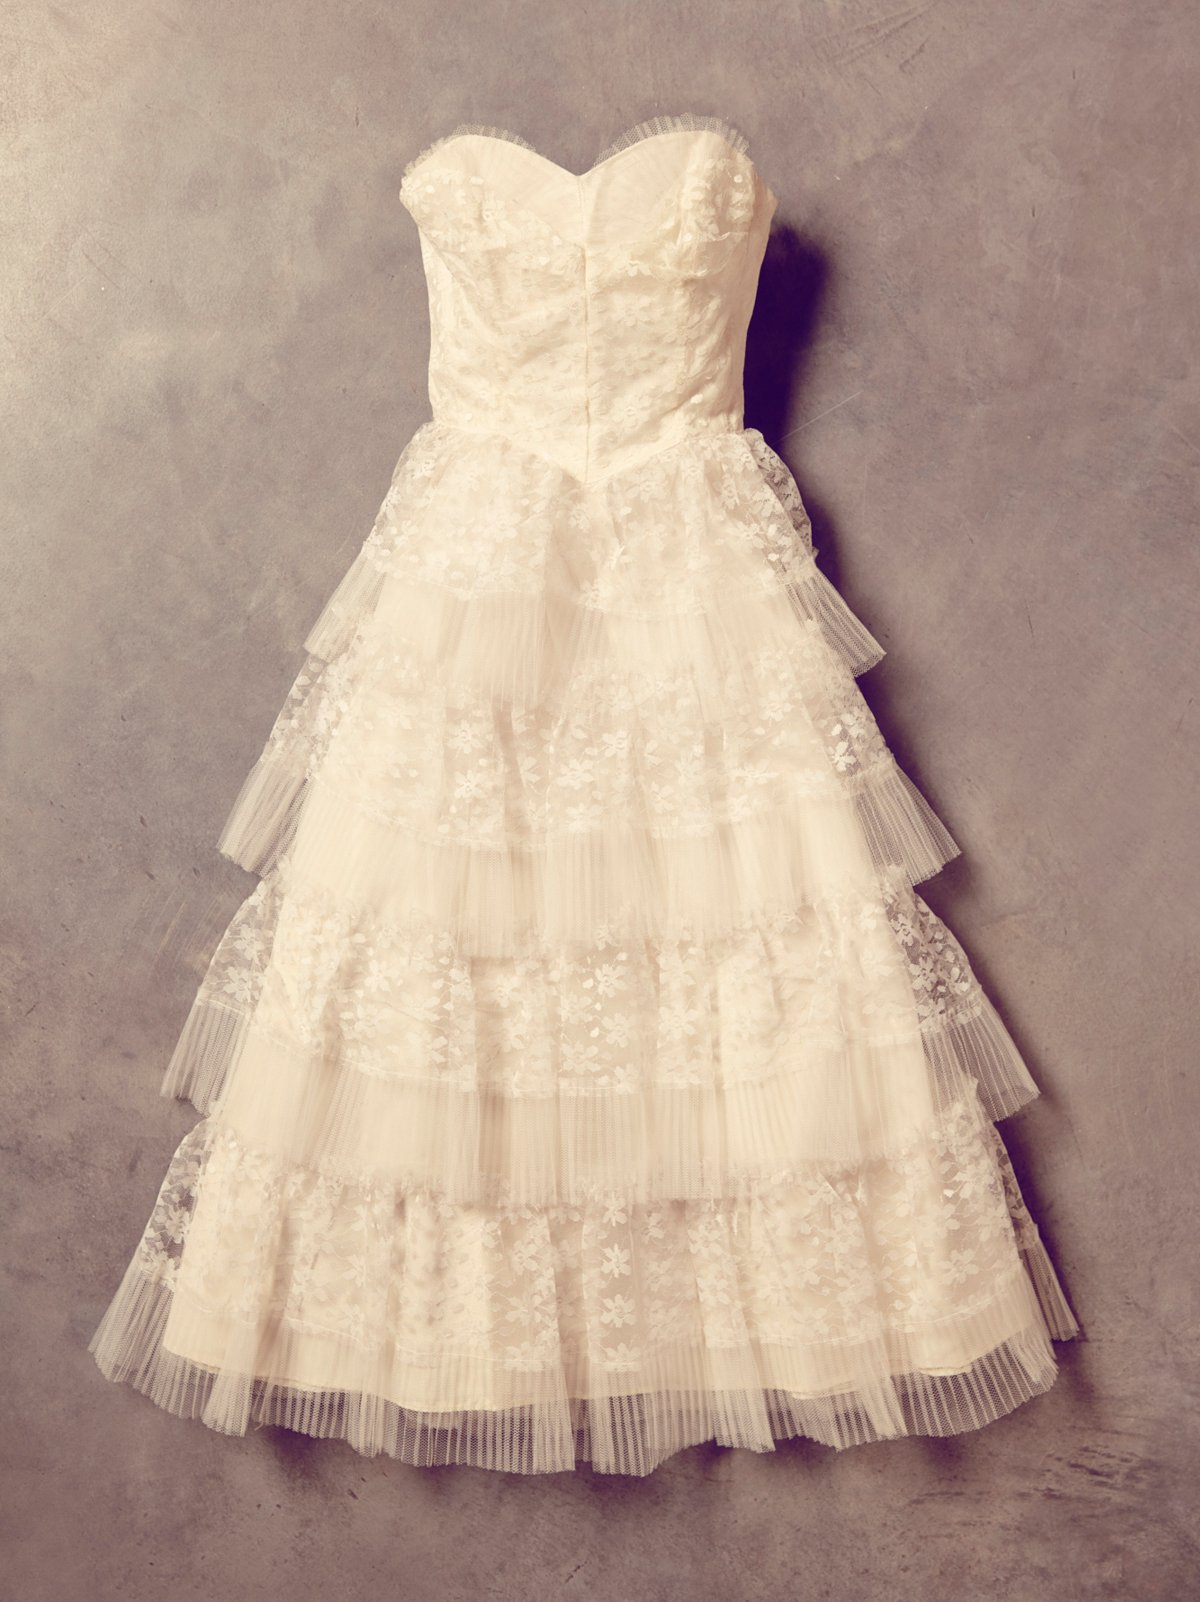 Vintage White Lace and Tulle Dress